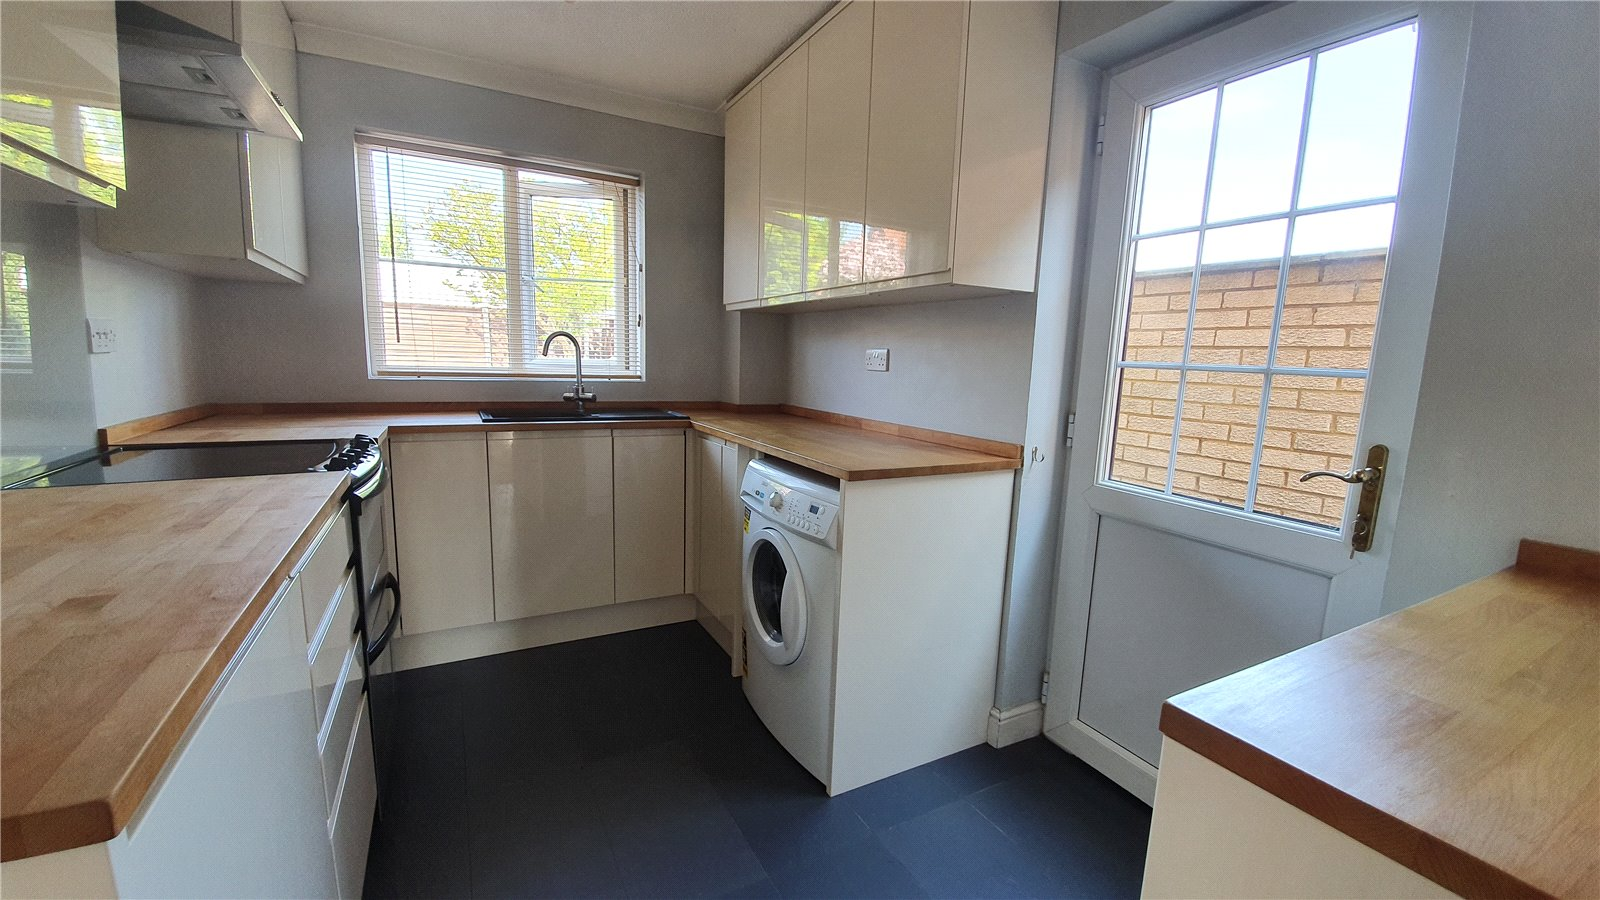 3 bed house for sale in Farm Close, Wyboston  - Property Image 3